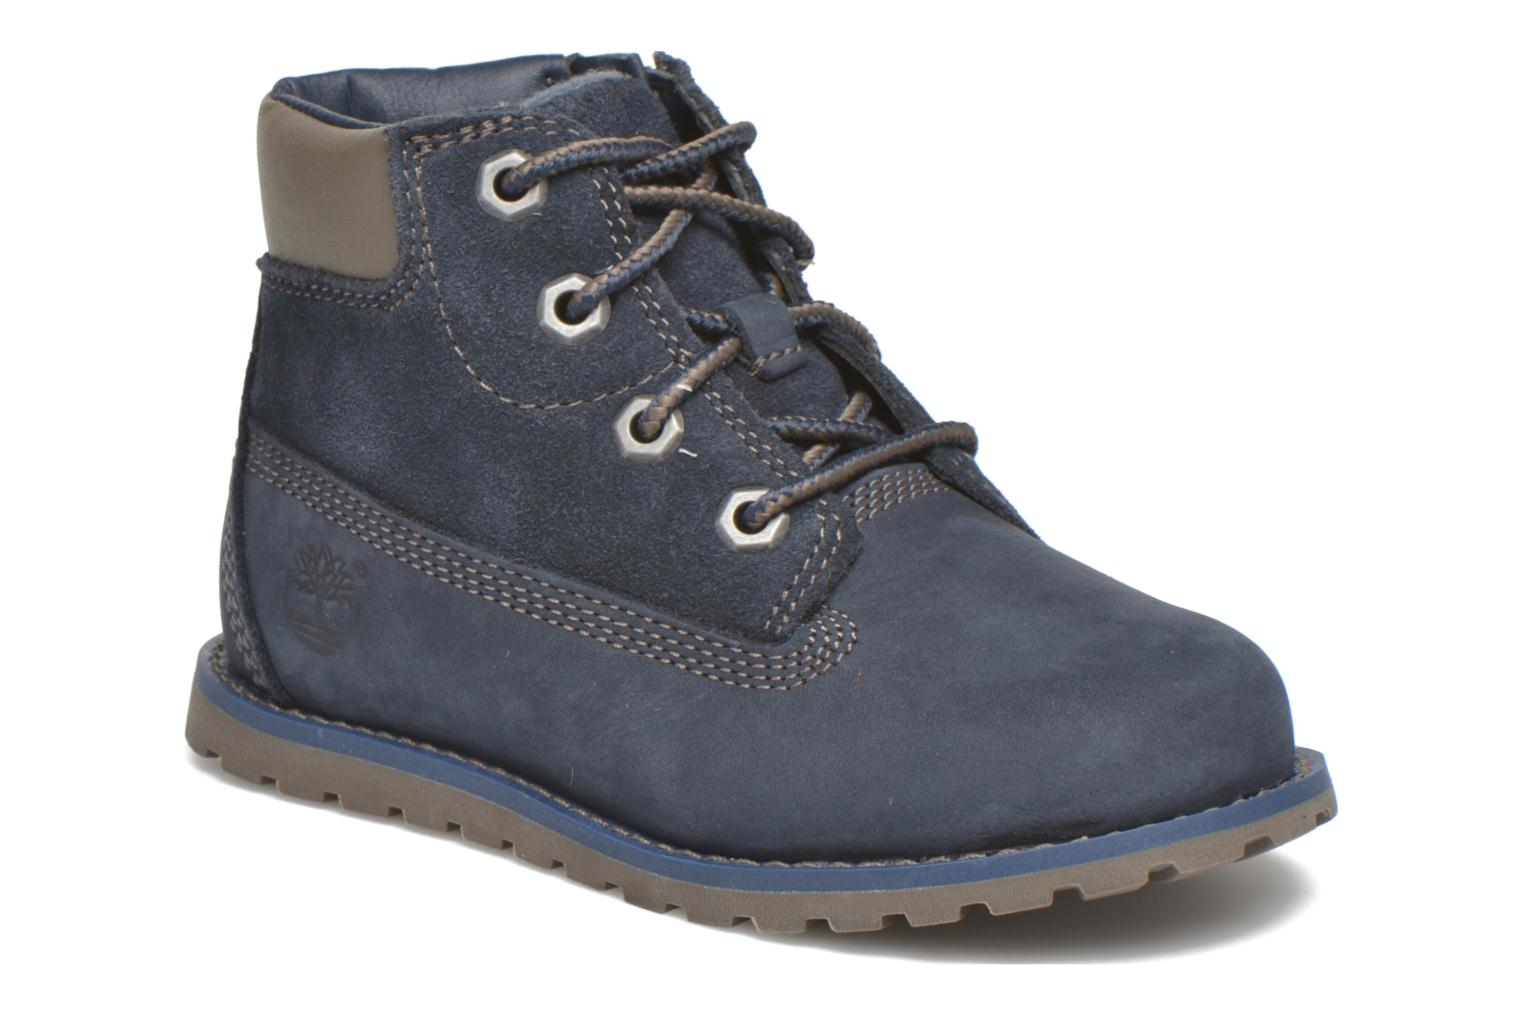 Pokey Pine 6In Boot with Navy